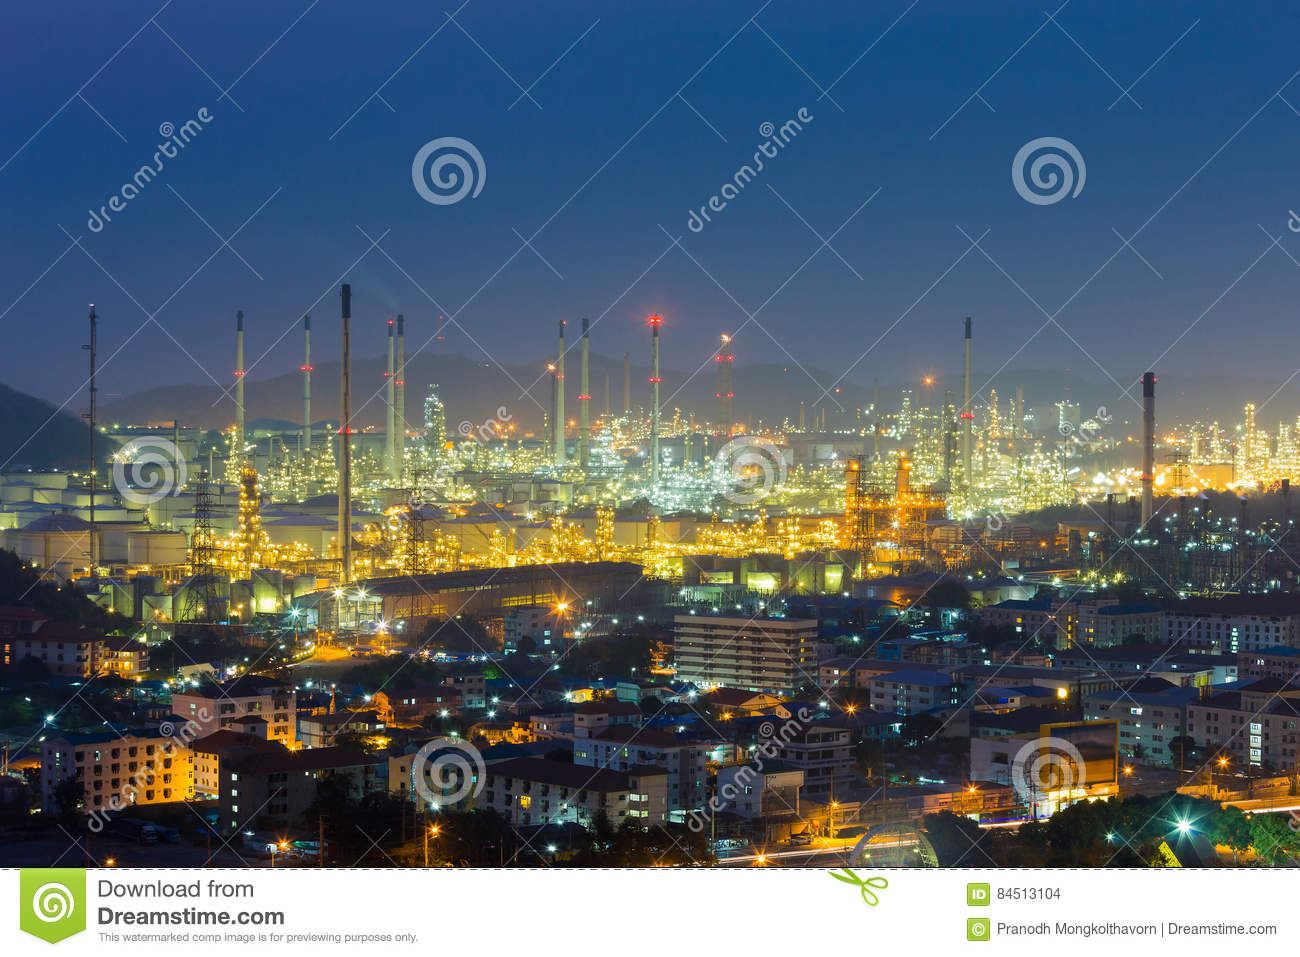 refinery-lights-night-view-mountain-back